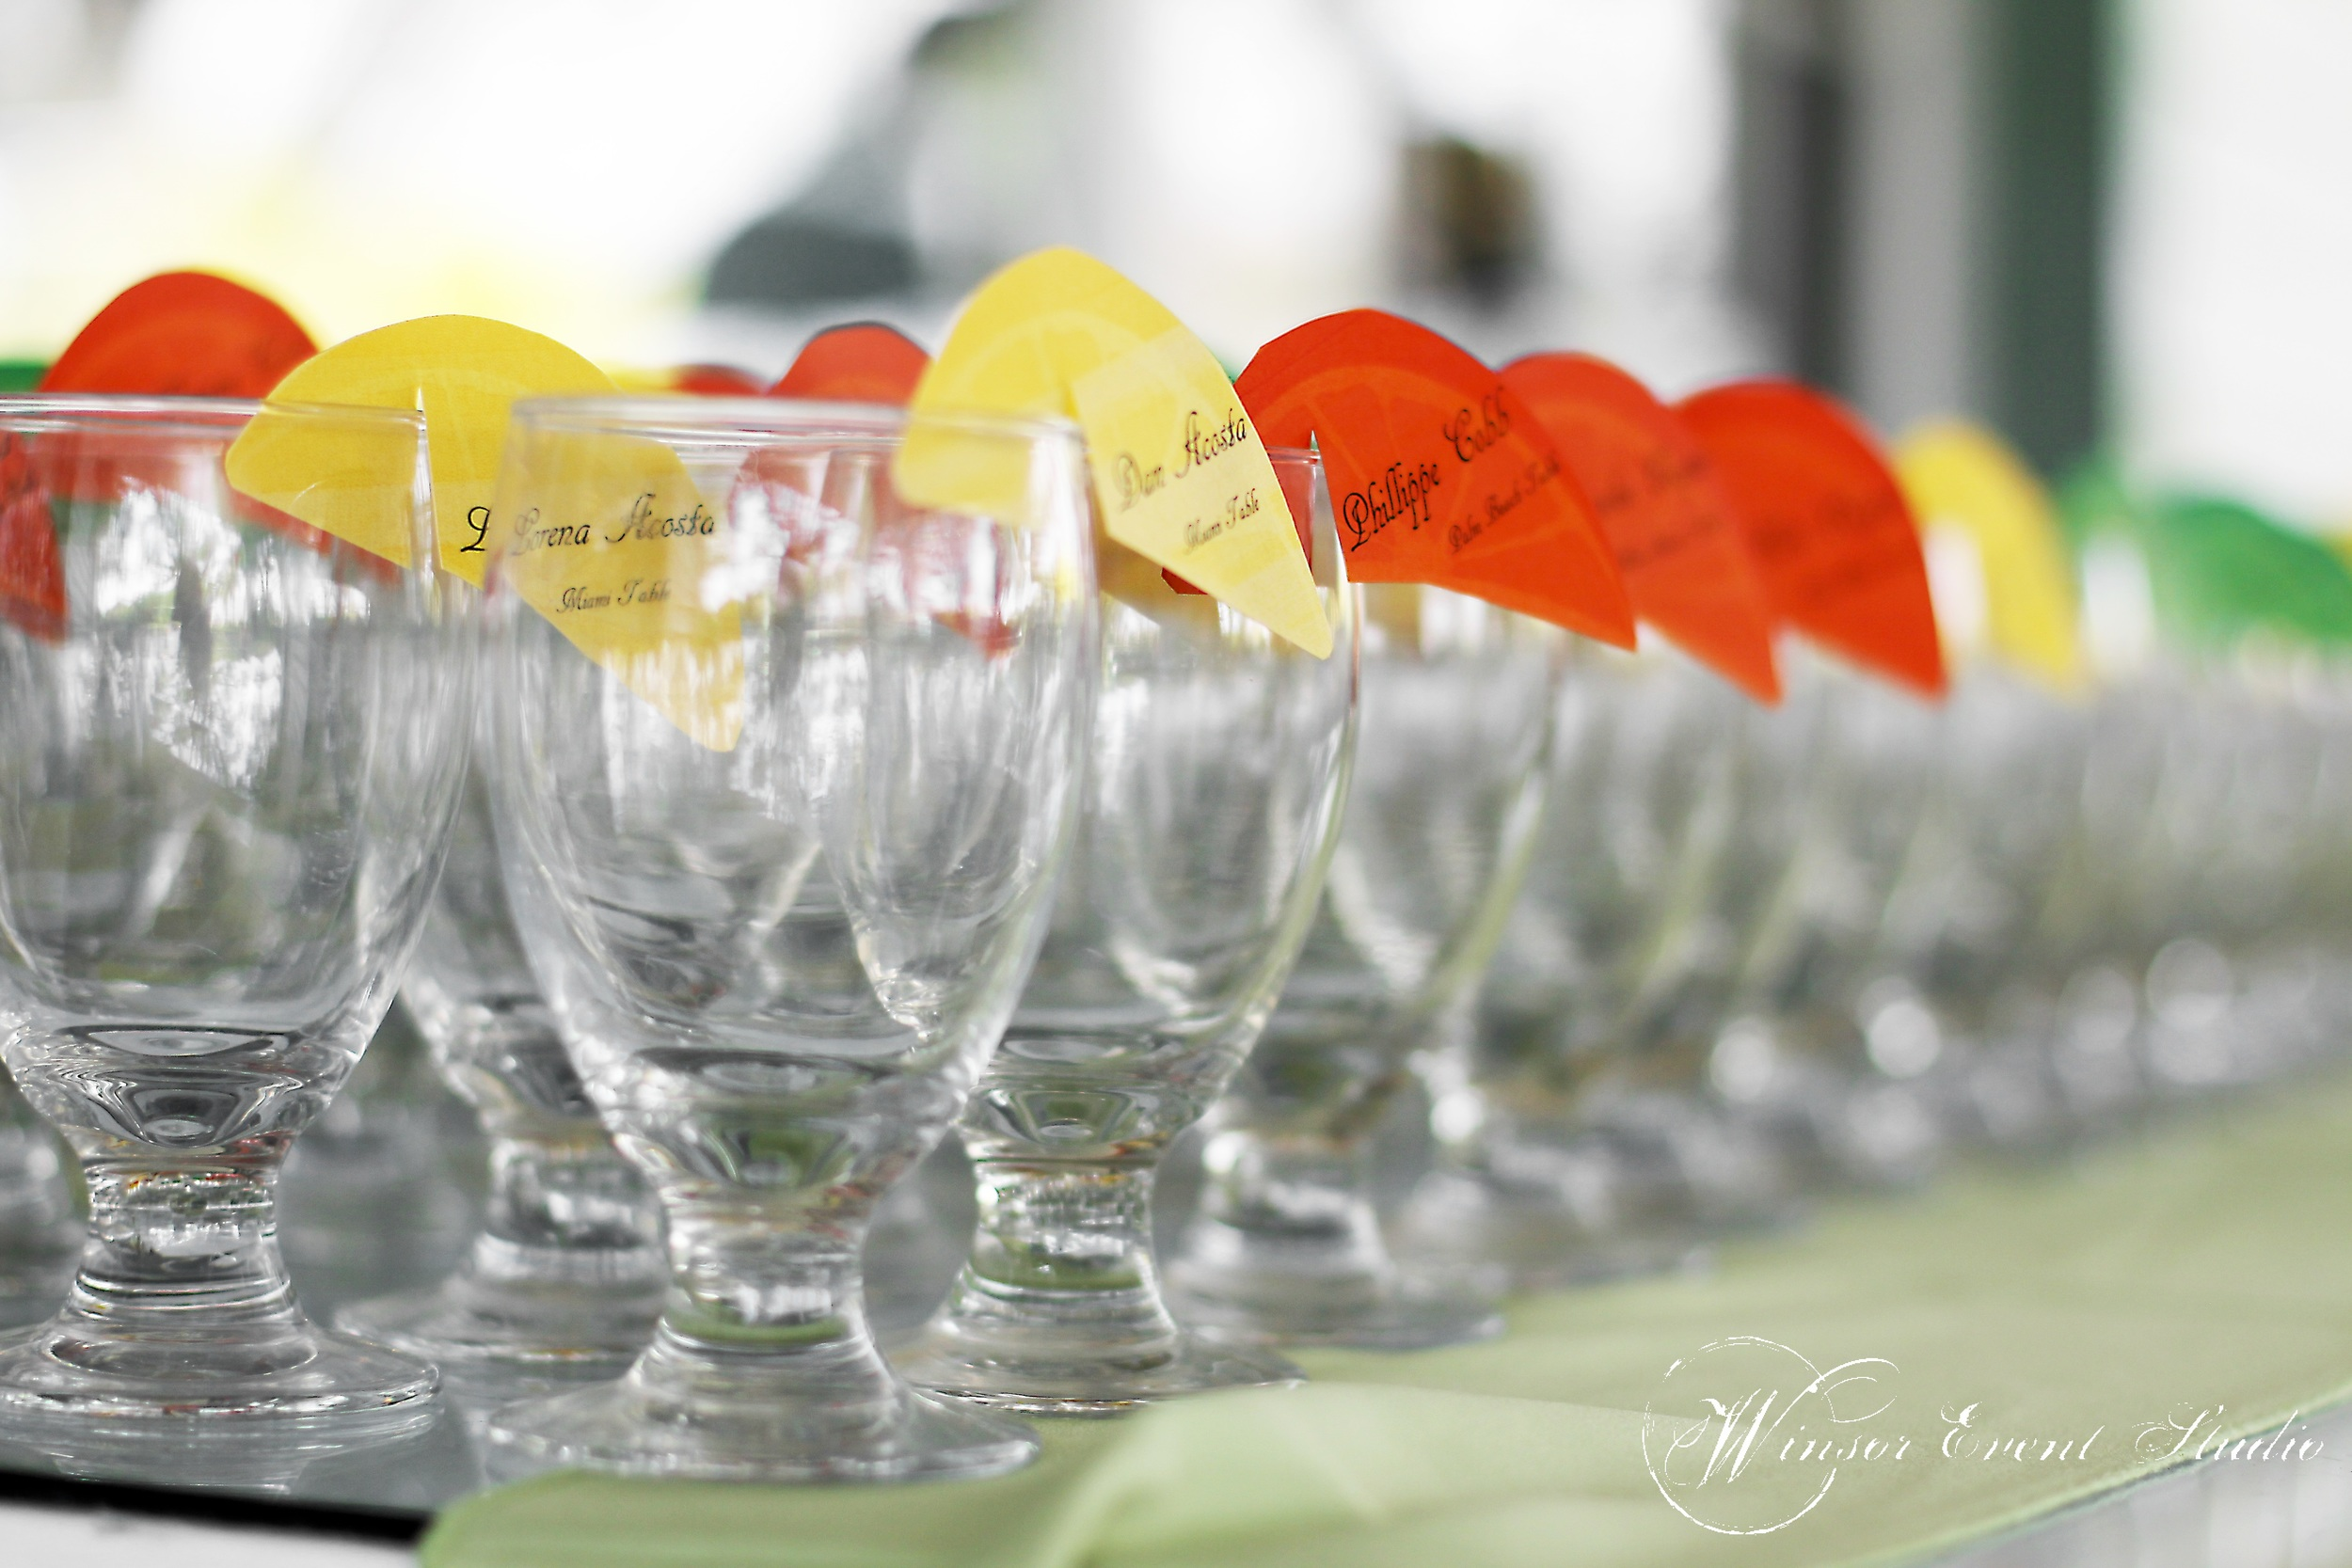 Citrus wedge escort cards perched atop rows of glasses were perfect for sipping tea during cocktail hour